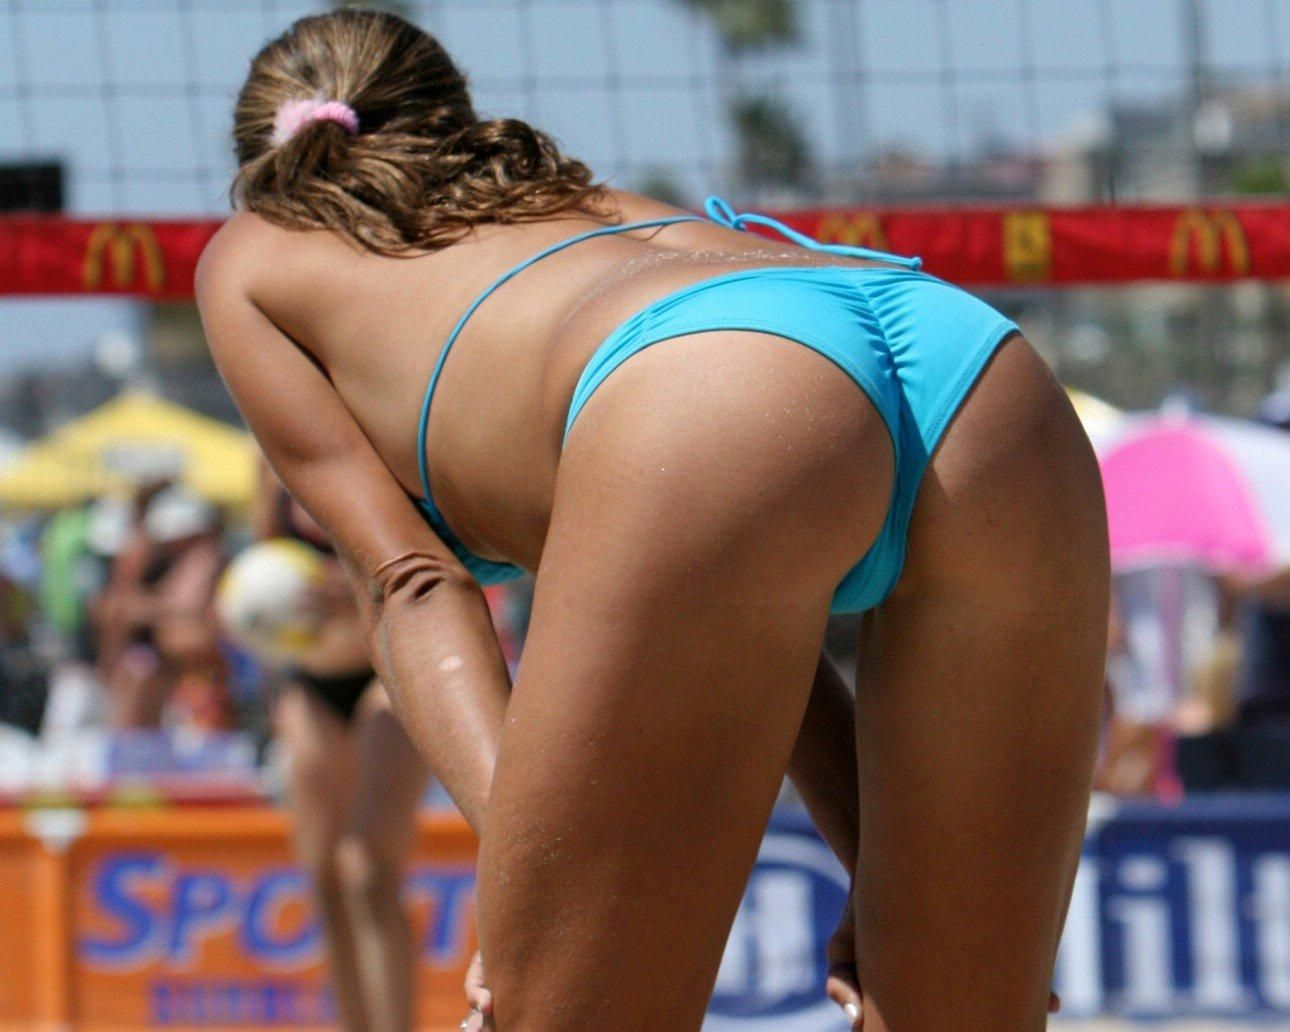 Sexy single athletic beach volleyball women